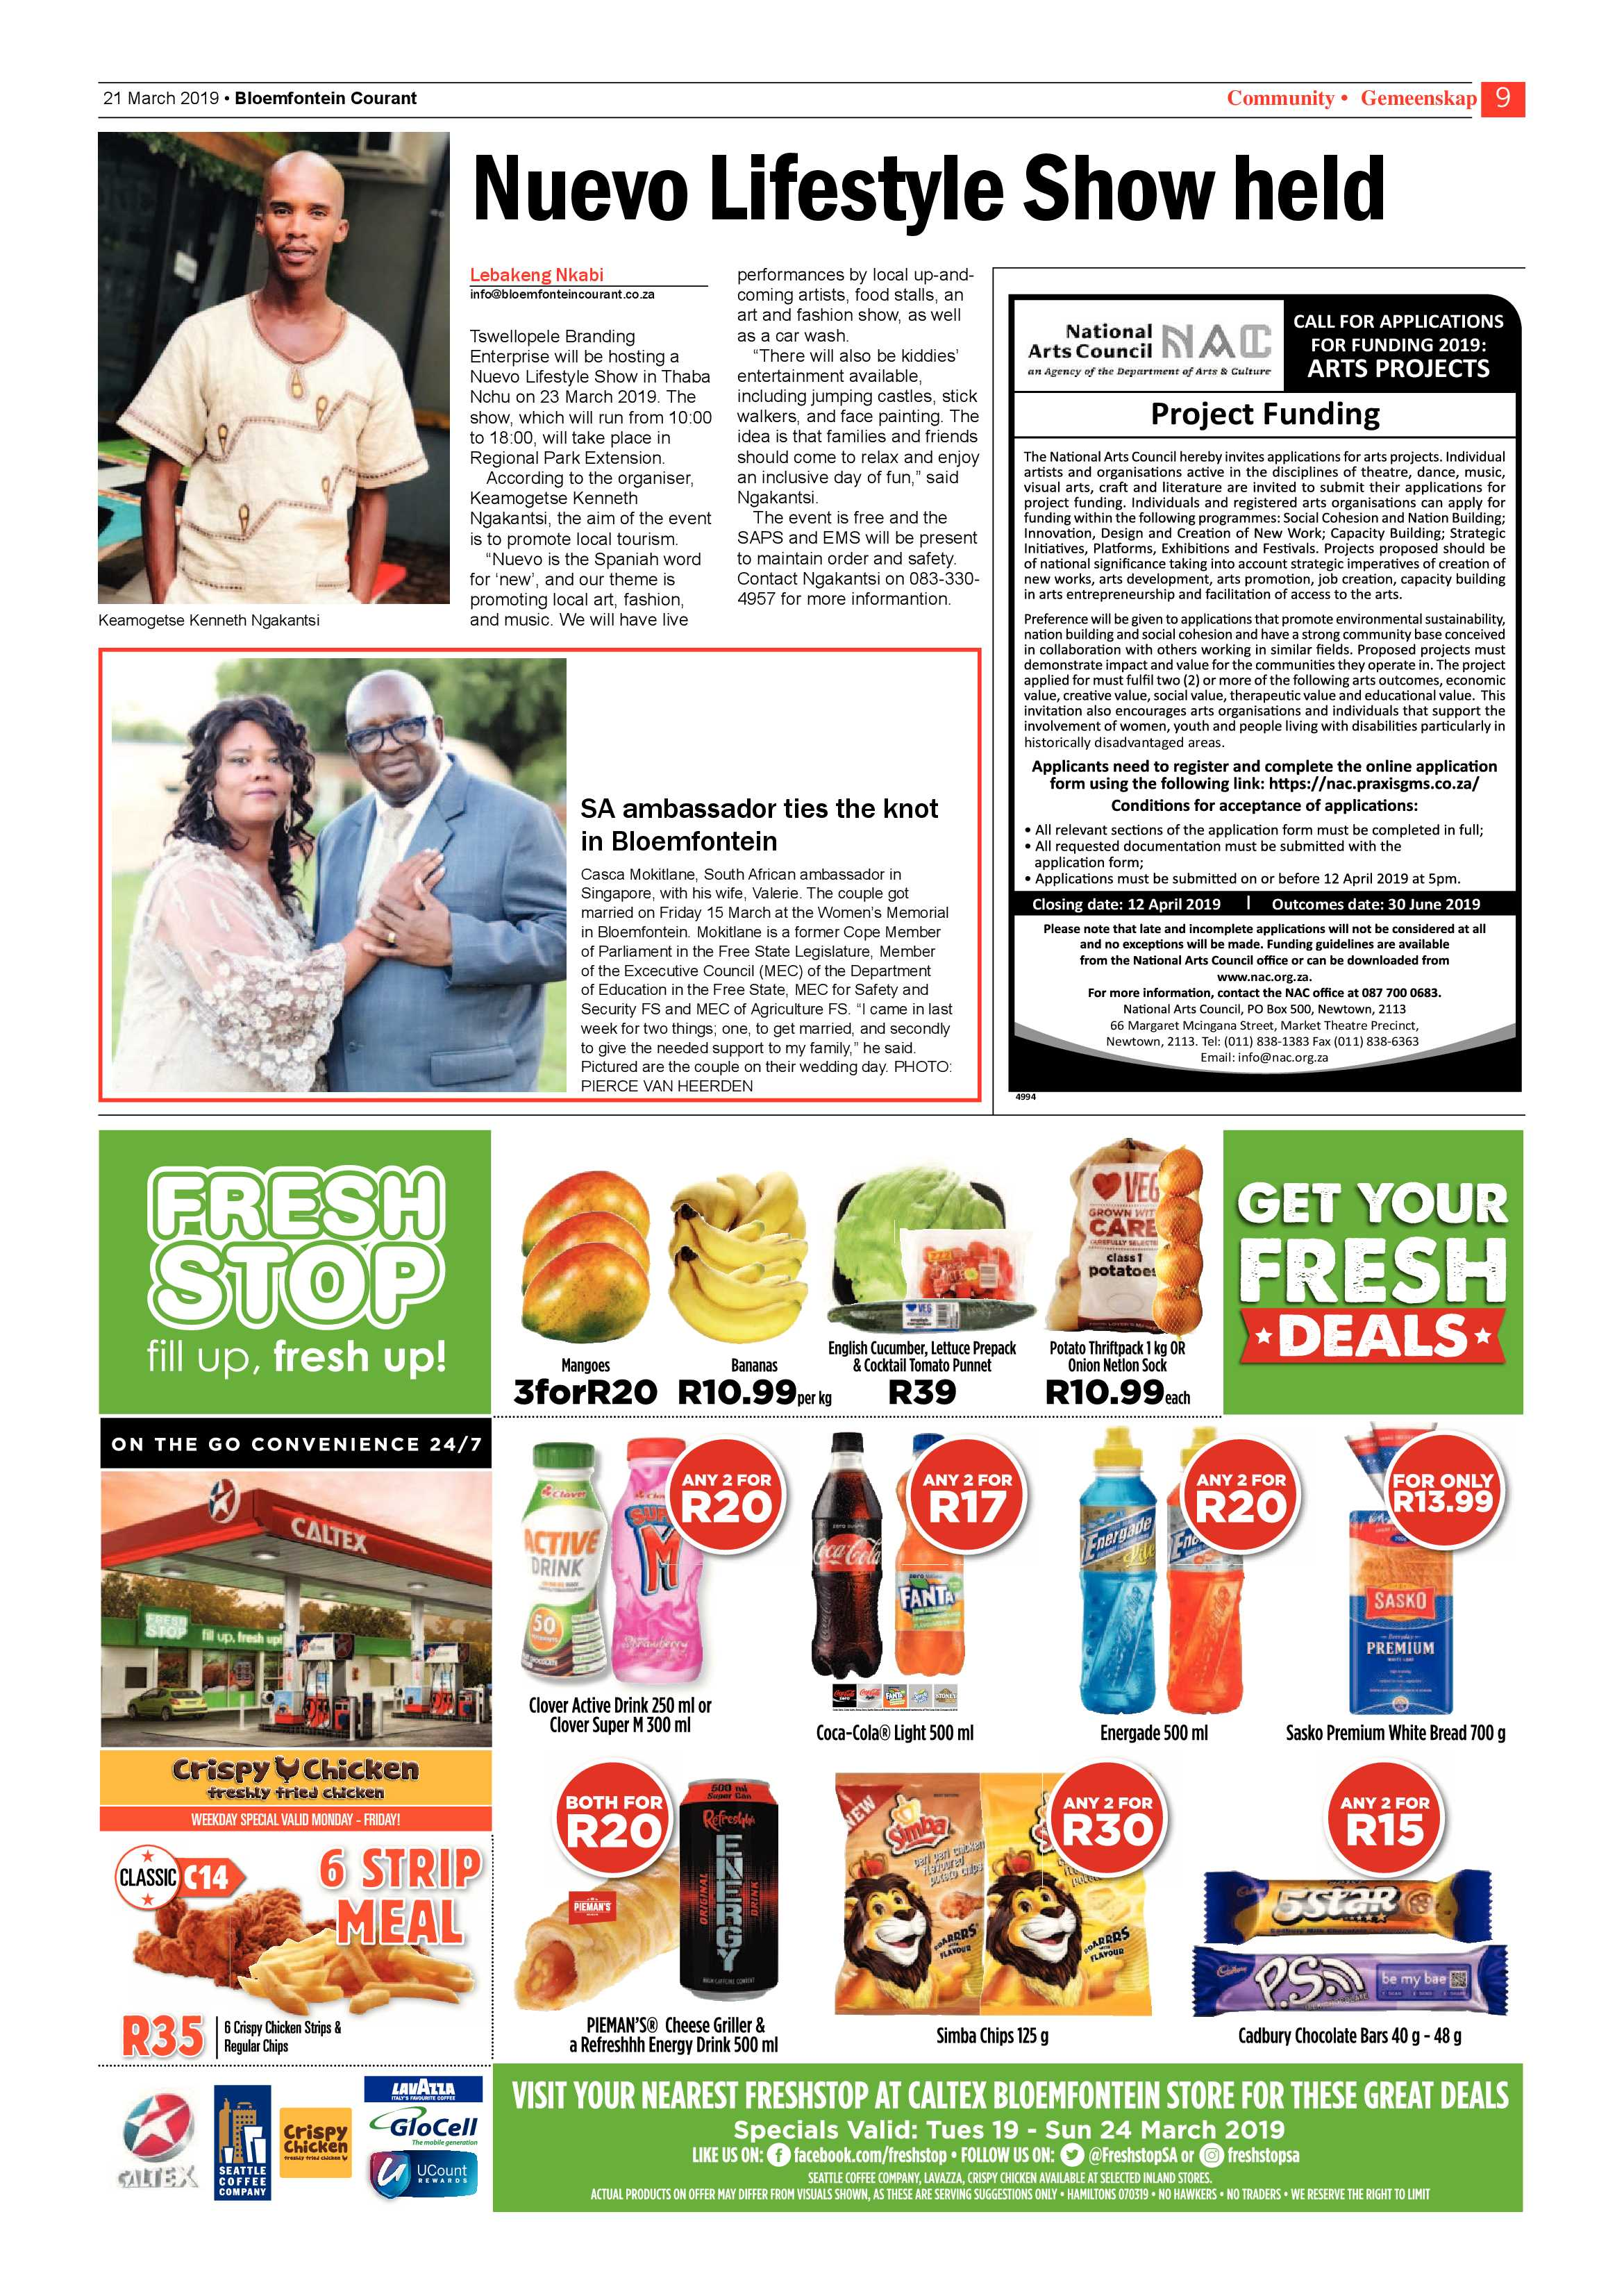 courant-21-march-2019-epapers-page-9